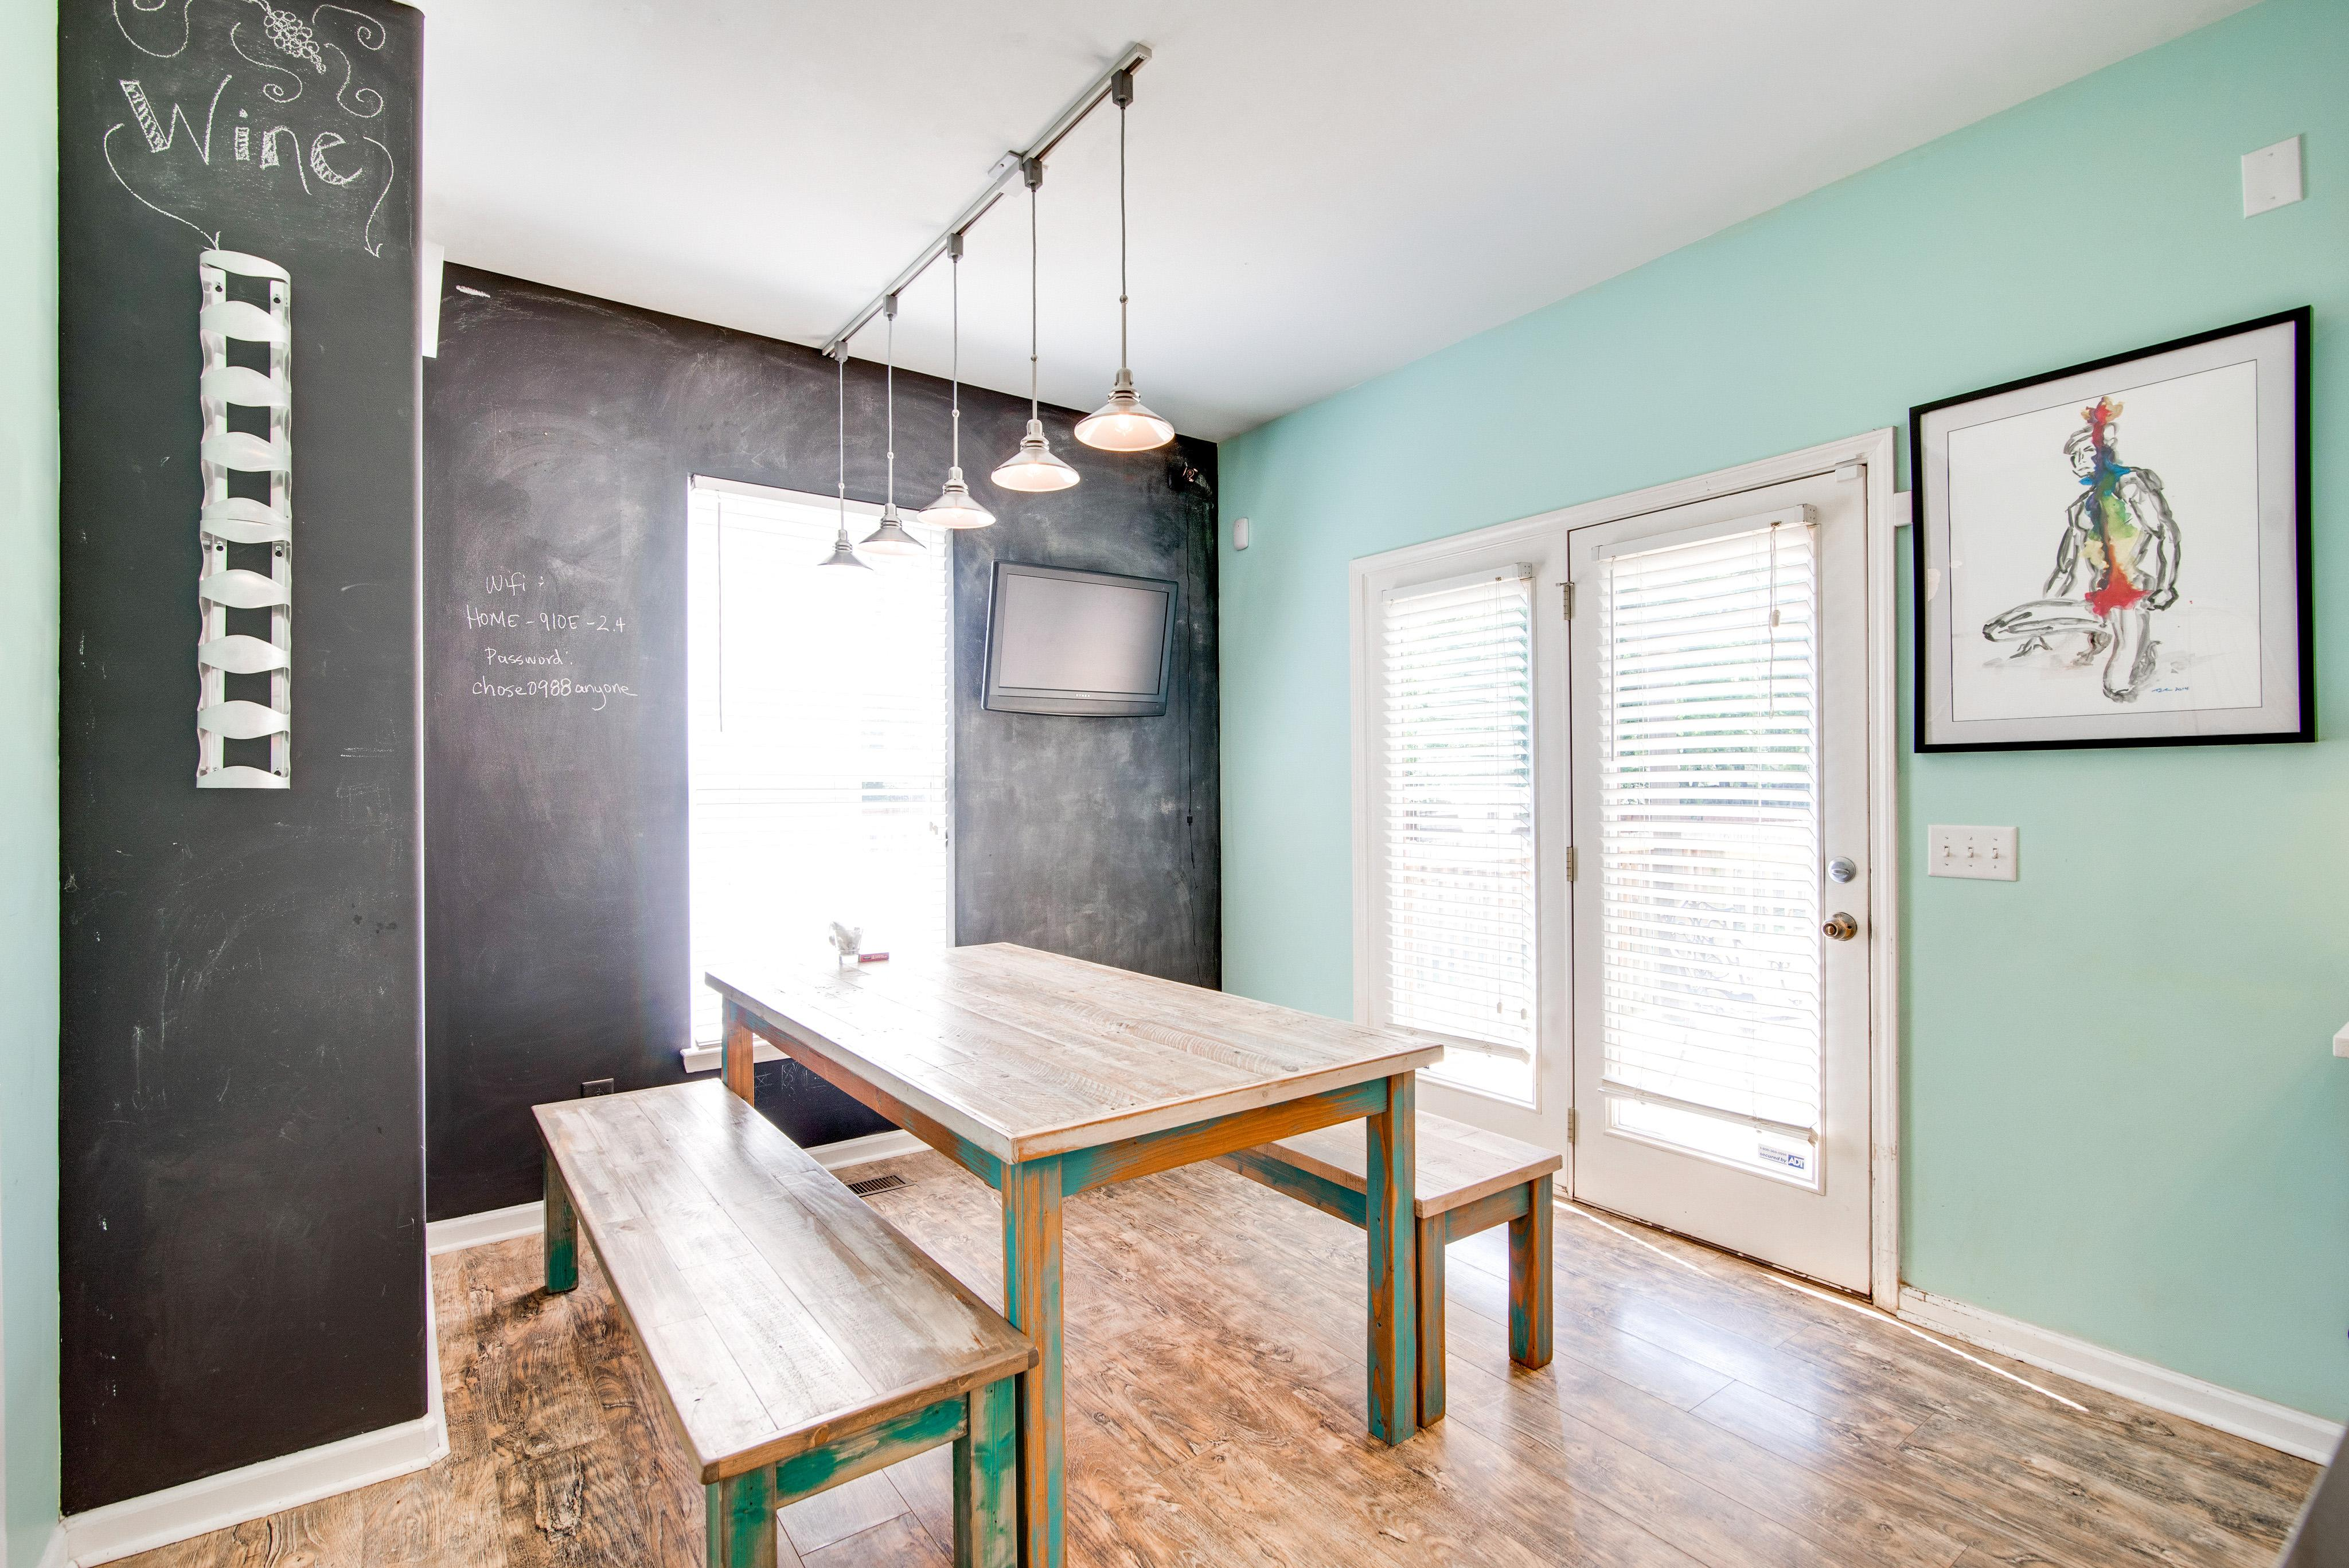 Dig into meals or let your imagination go wild in the dining room with bench seating and chalkboard walls.